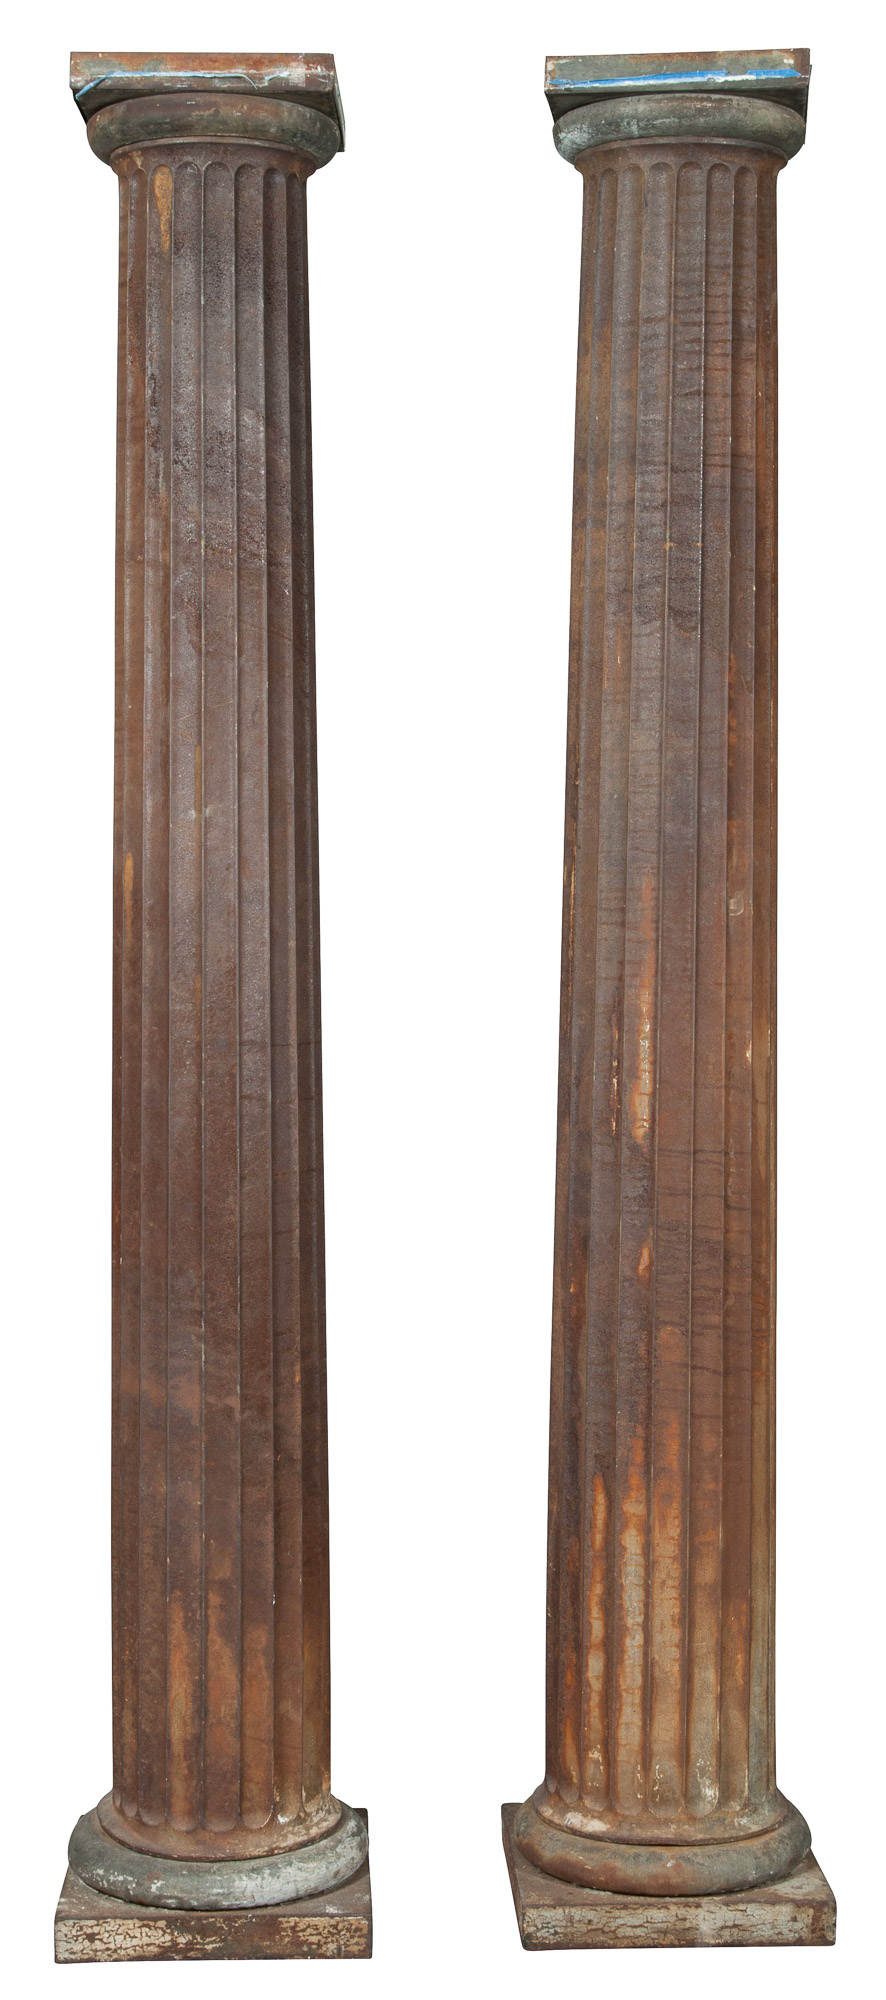 Lot image - Pair of Sheet Metal Fluted Columns with Doric Capitals